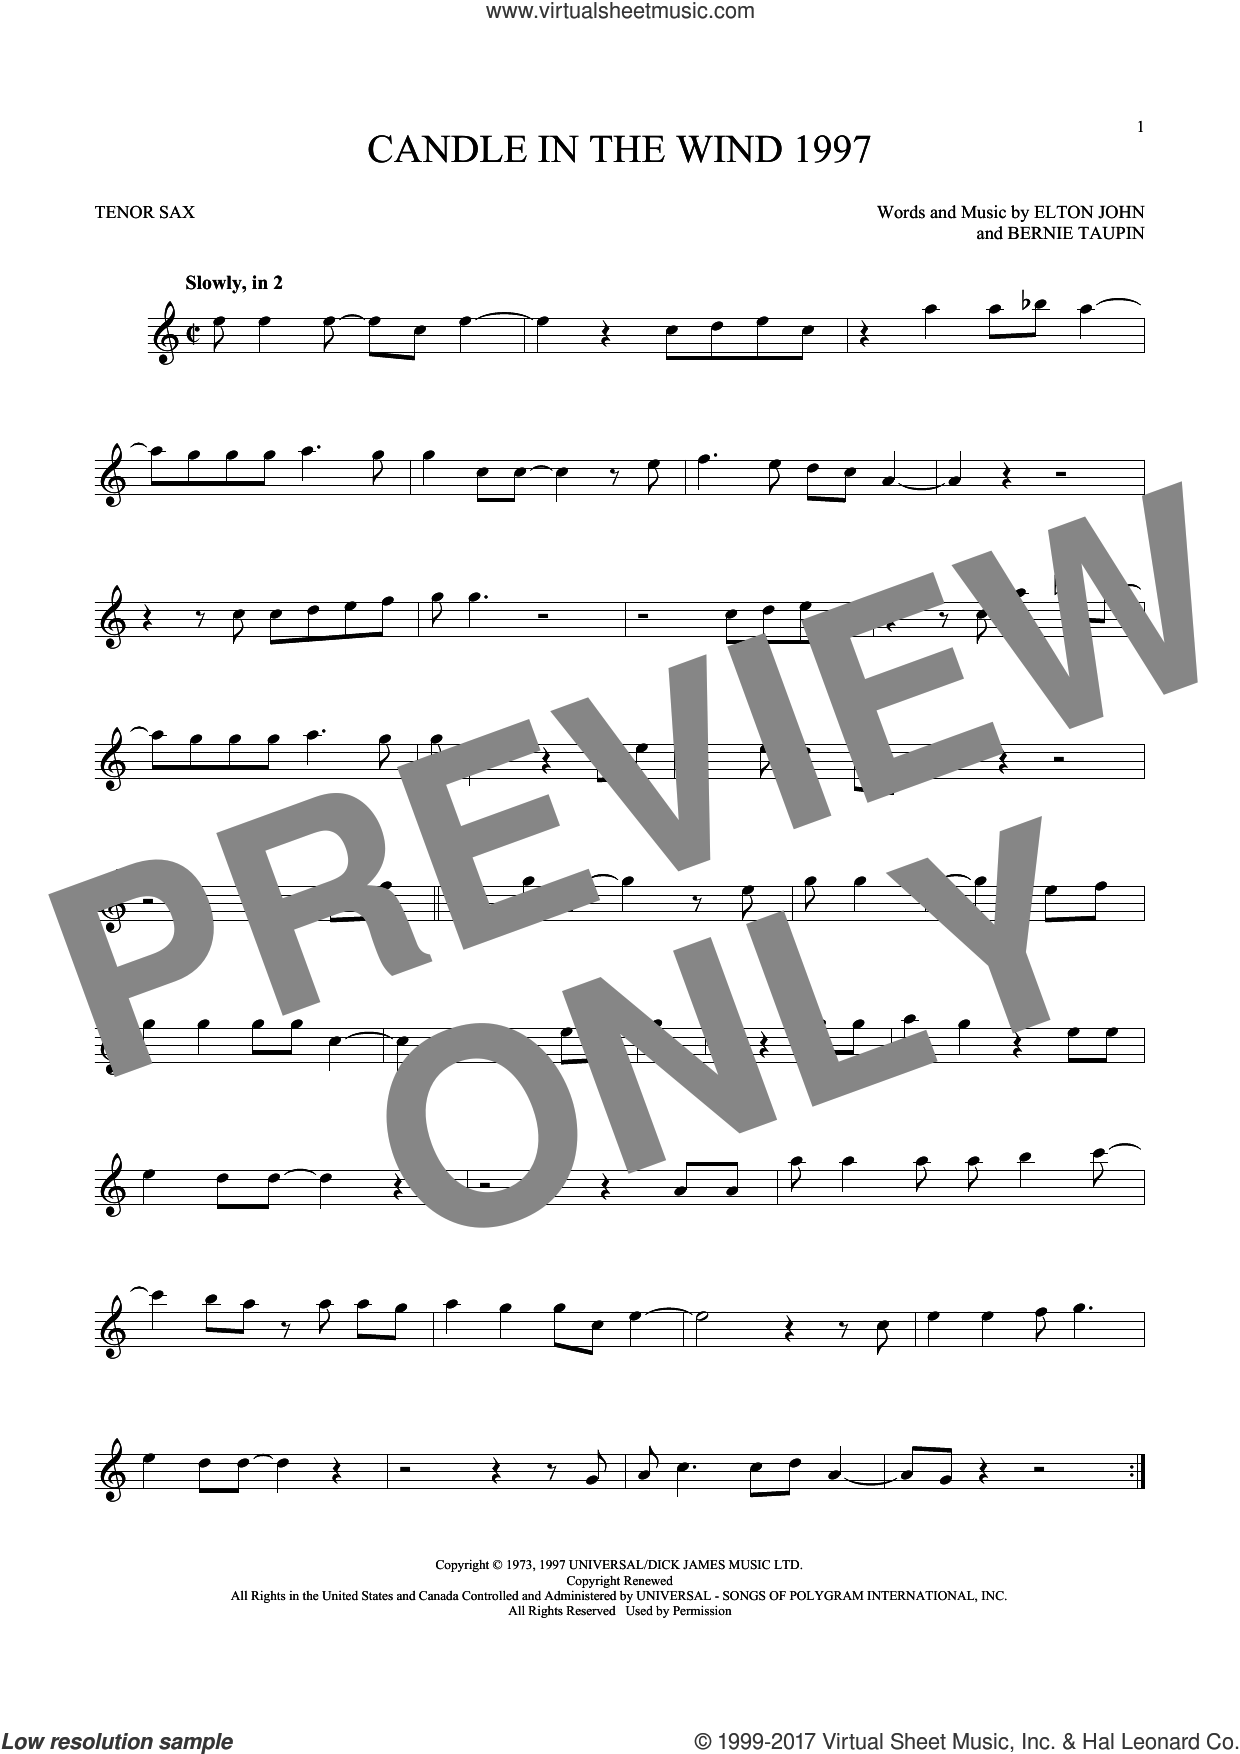 Candle In The Wind 1997 sheet music for tenor saxophone solo by Elton John and Bernie Taupin, intermediate skill level